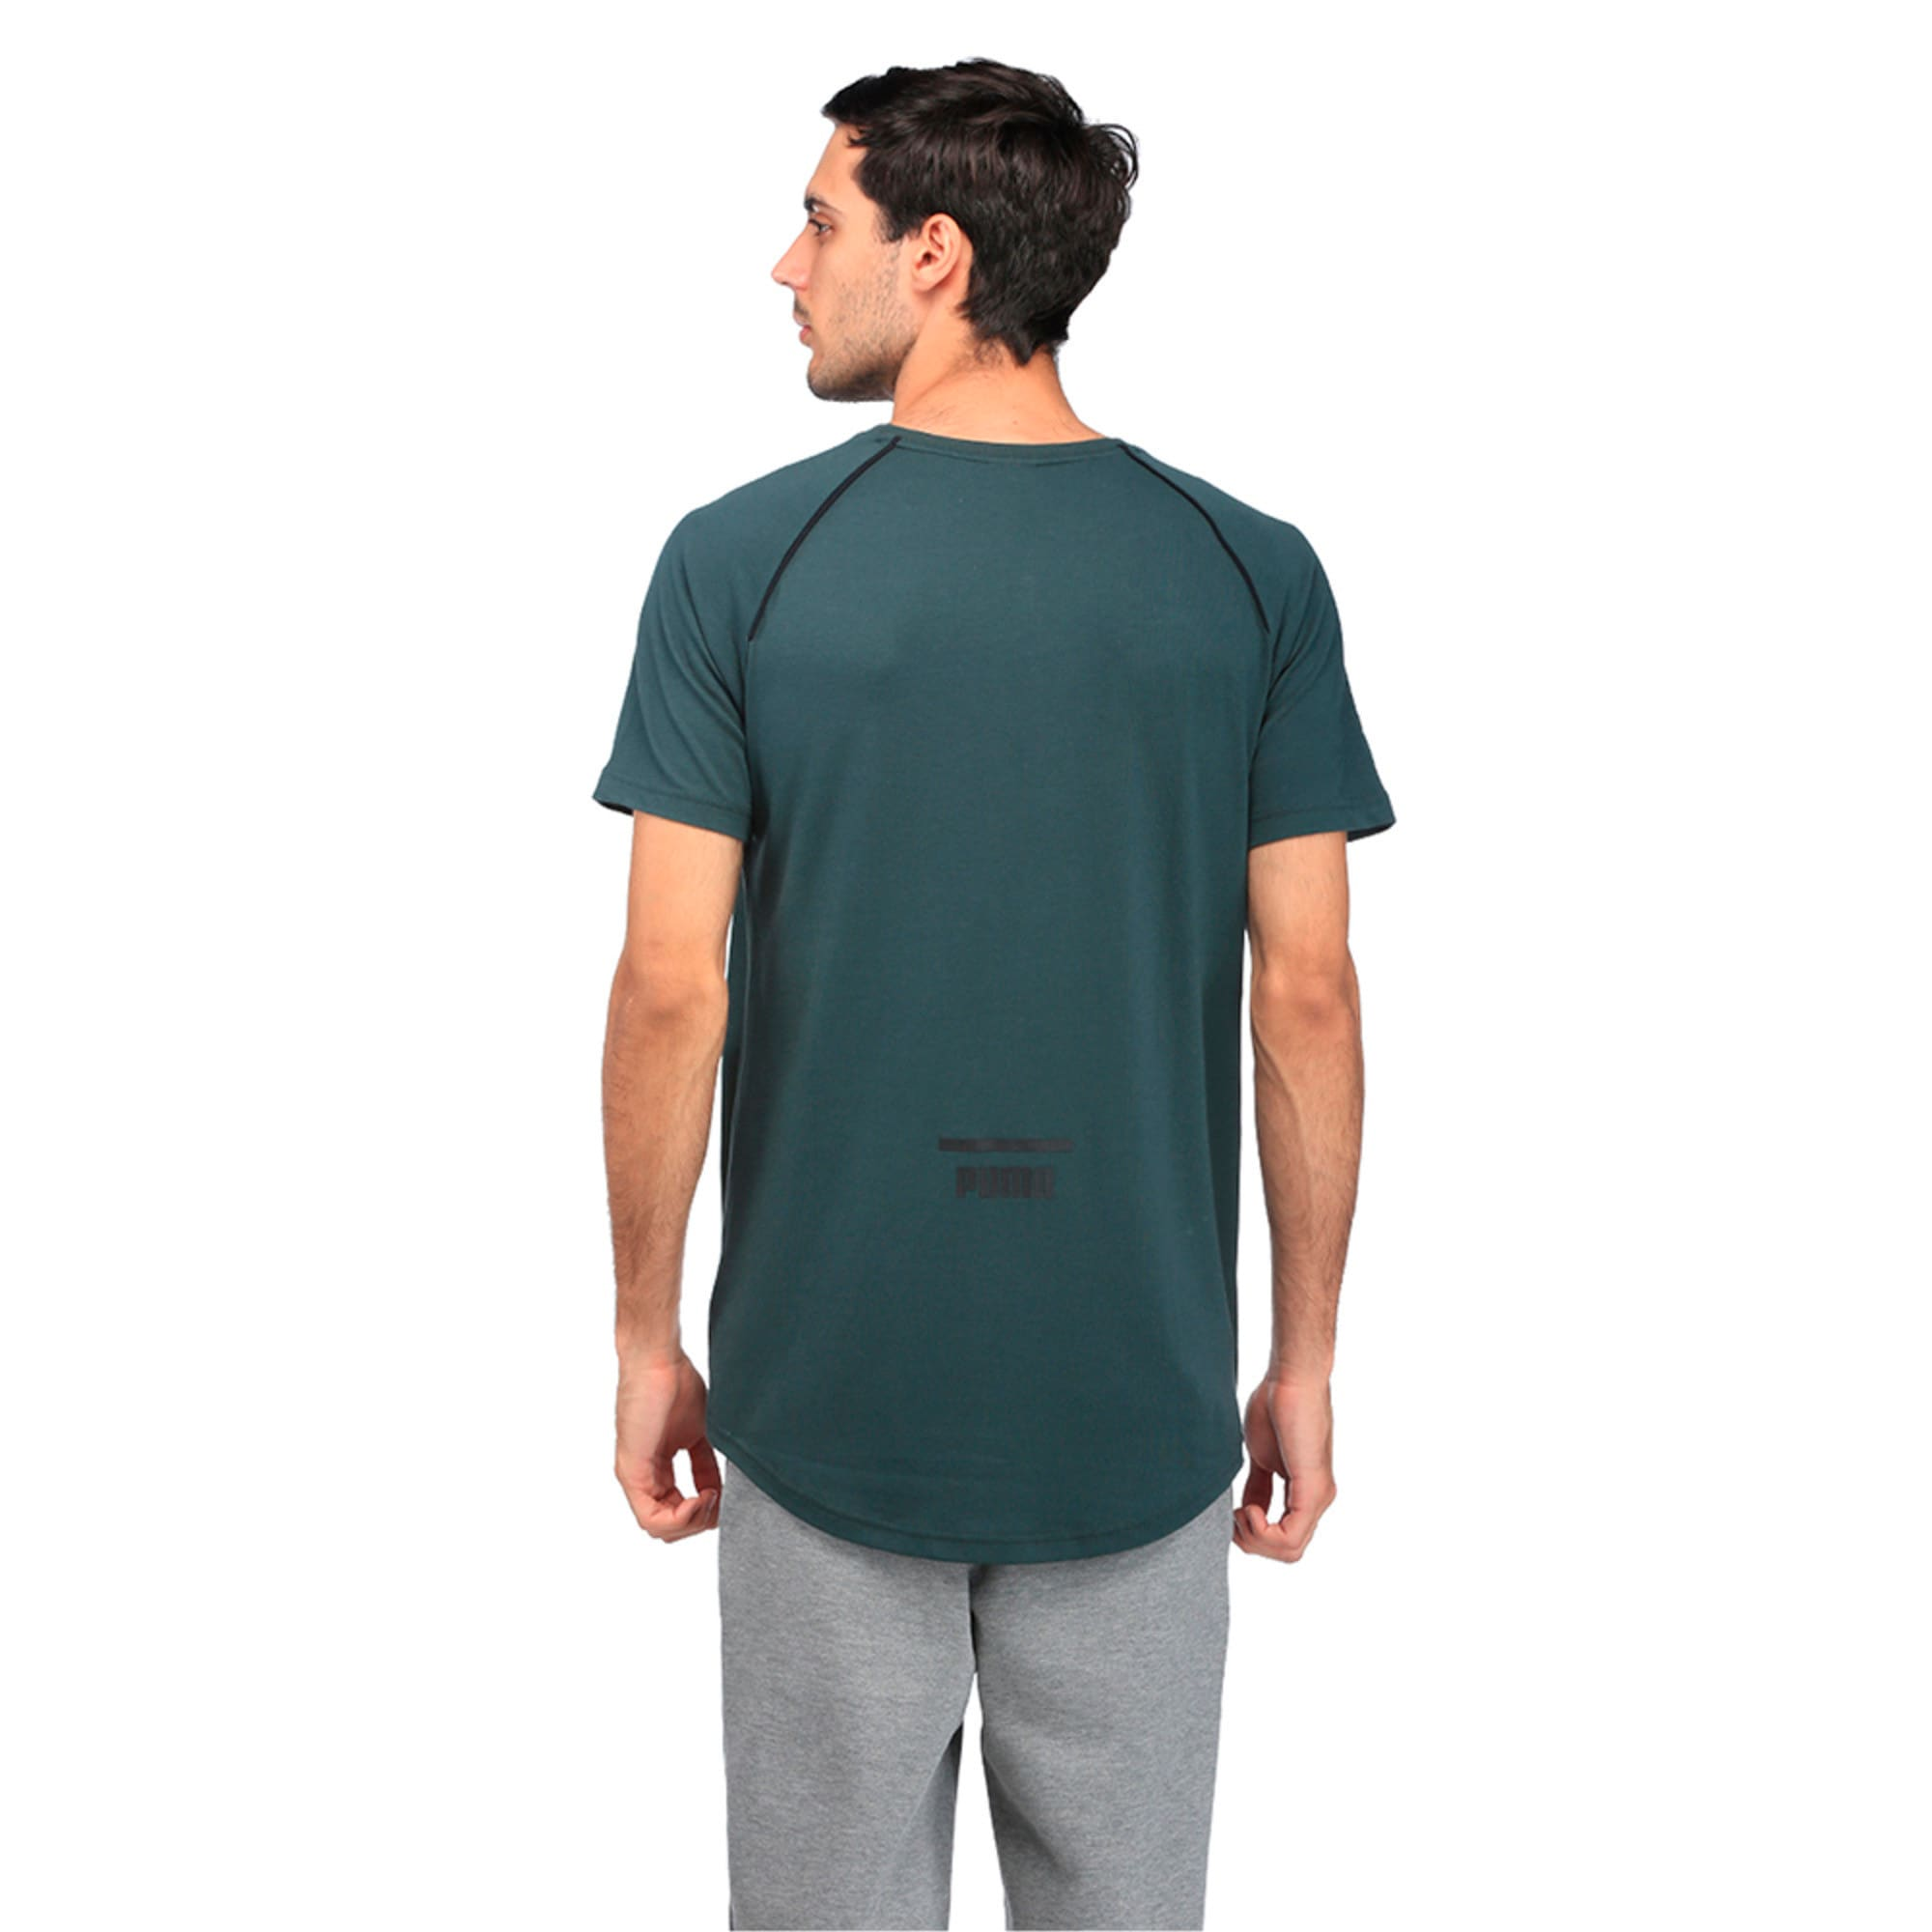 Thumbnail 4 of Evo Core Tee, Green Gables, medium-IND